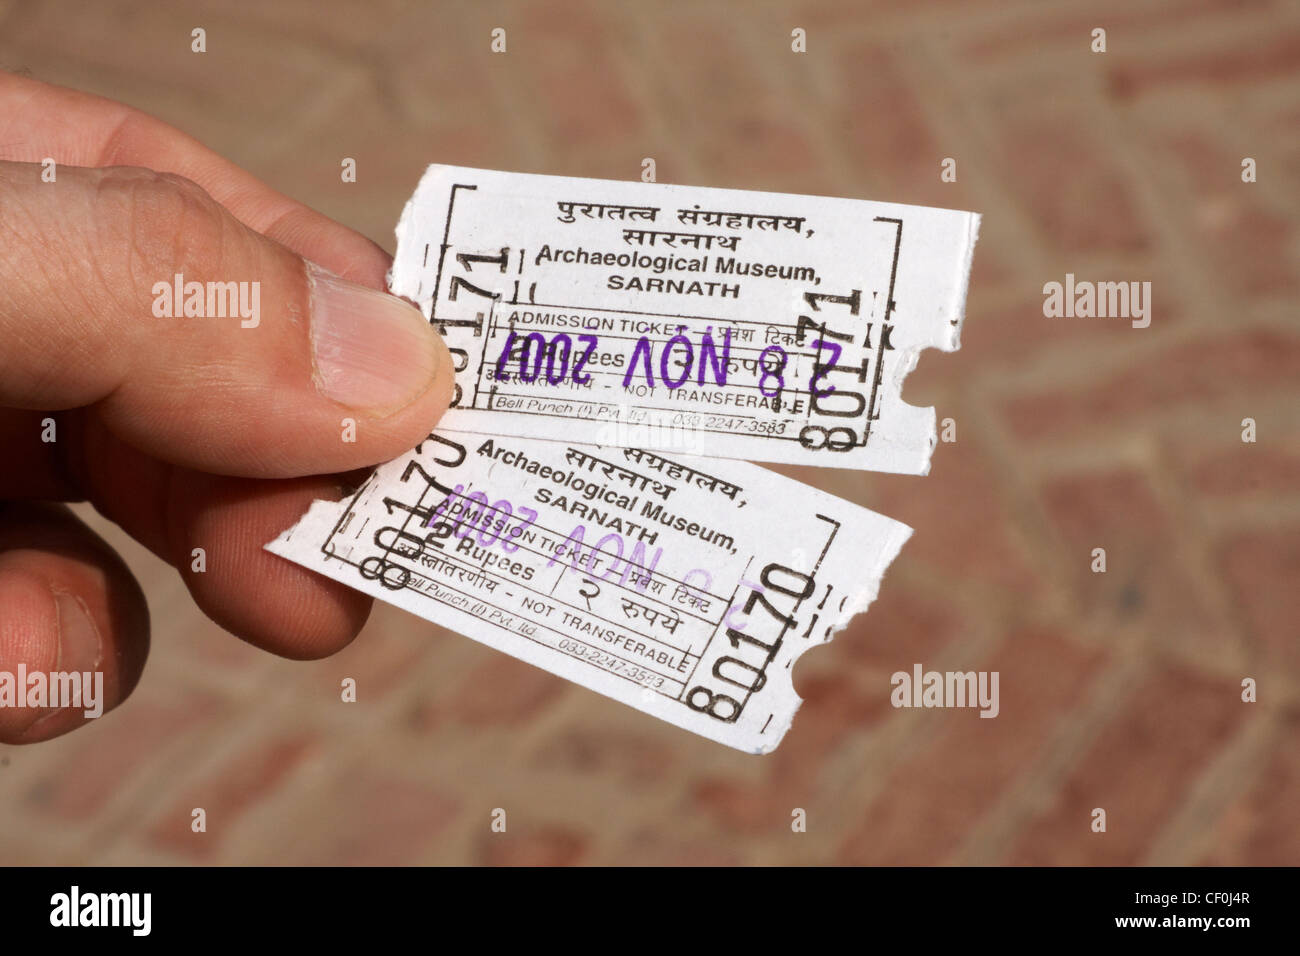 Archaeological Museum admission tickets, Sarnath, India - Stock Image